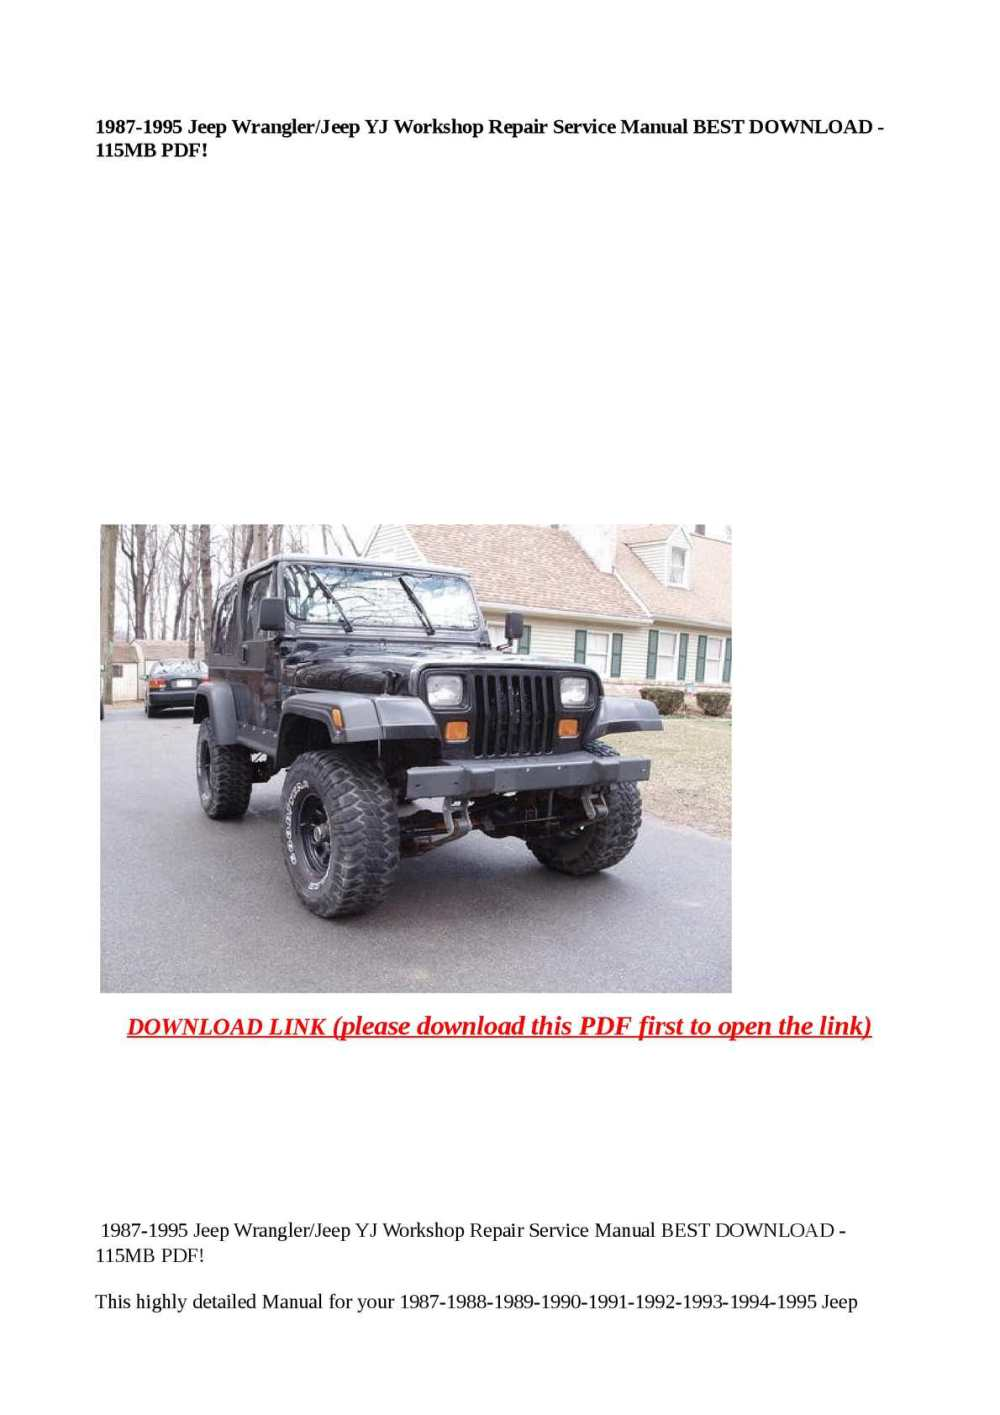 medium resolution of calam o 1987 1995 jeep wrangler jeep yj workshop repair service manual best download 115mb pdf